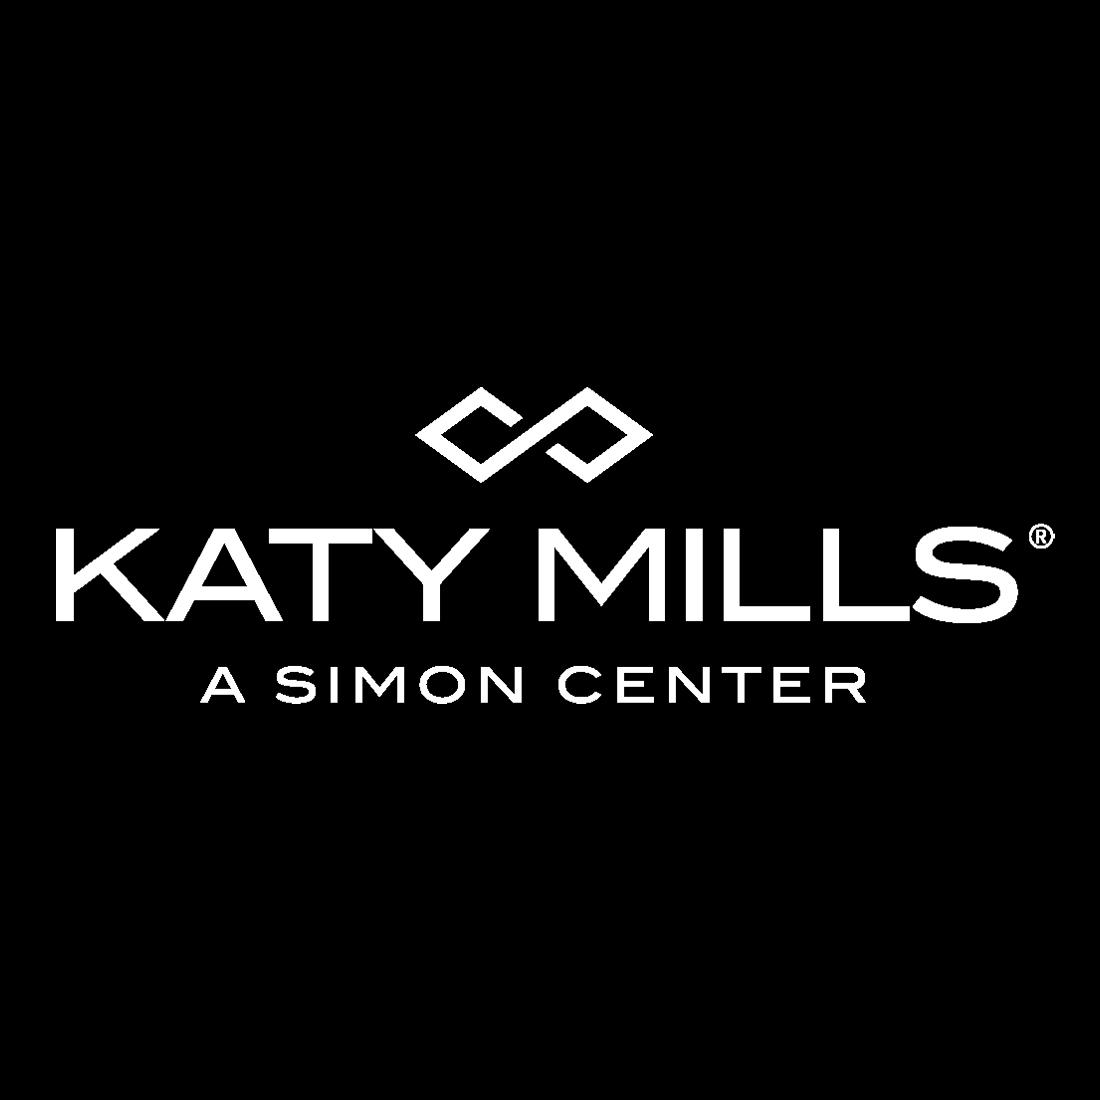 Katy Mills Mall Stores Map on west oaks mall store map, westfield broward mall store map, lloyd center mall store map, south hills village mall store map, galleria mall store map, melbourne square mall store map,